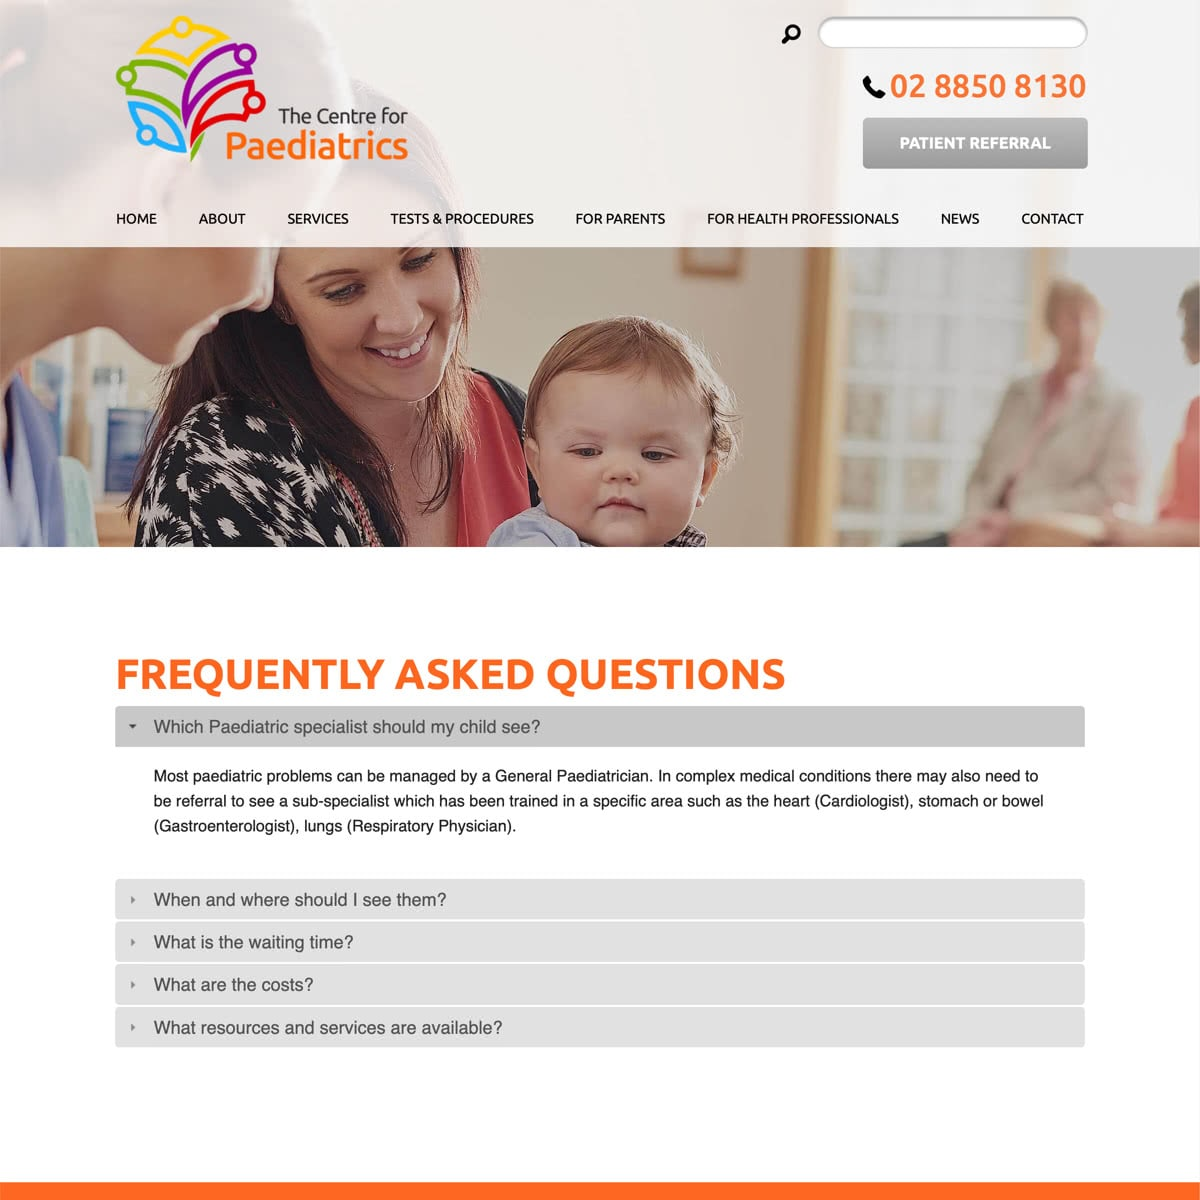 The Centre for Paediatrics - Frequently Asked Questions